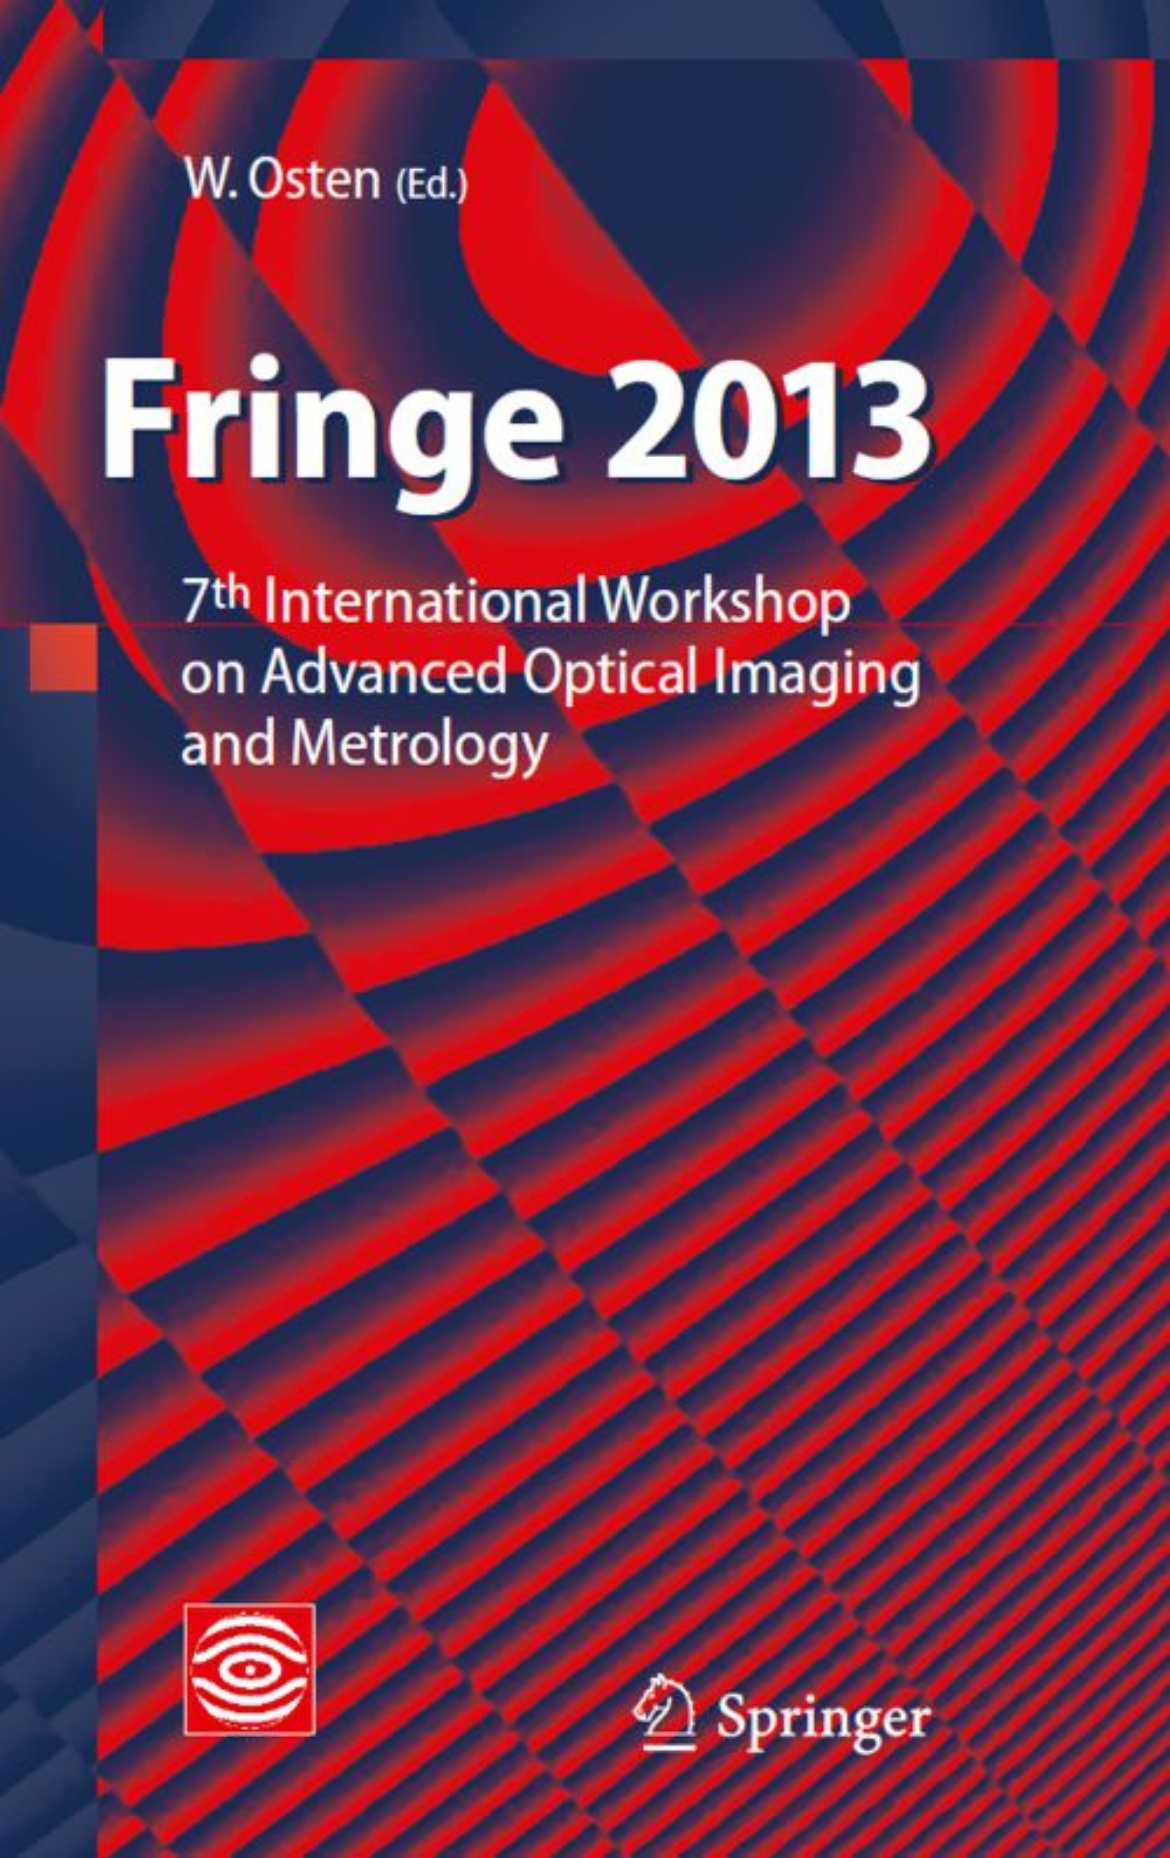 Fringe 2013: 7th International Workshop on Advanced Optical Imaging and Metrology